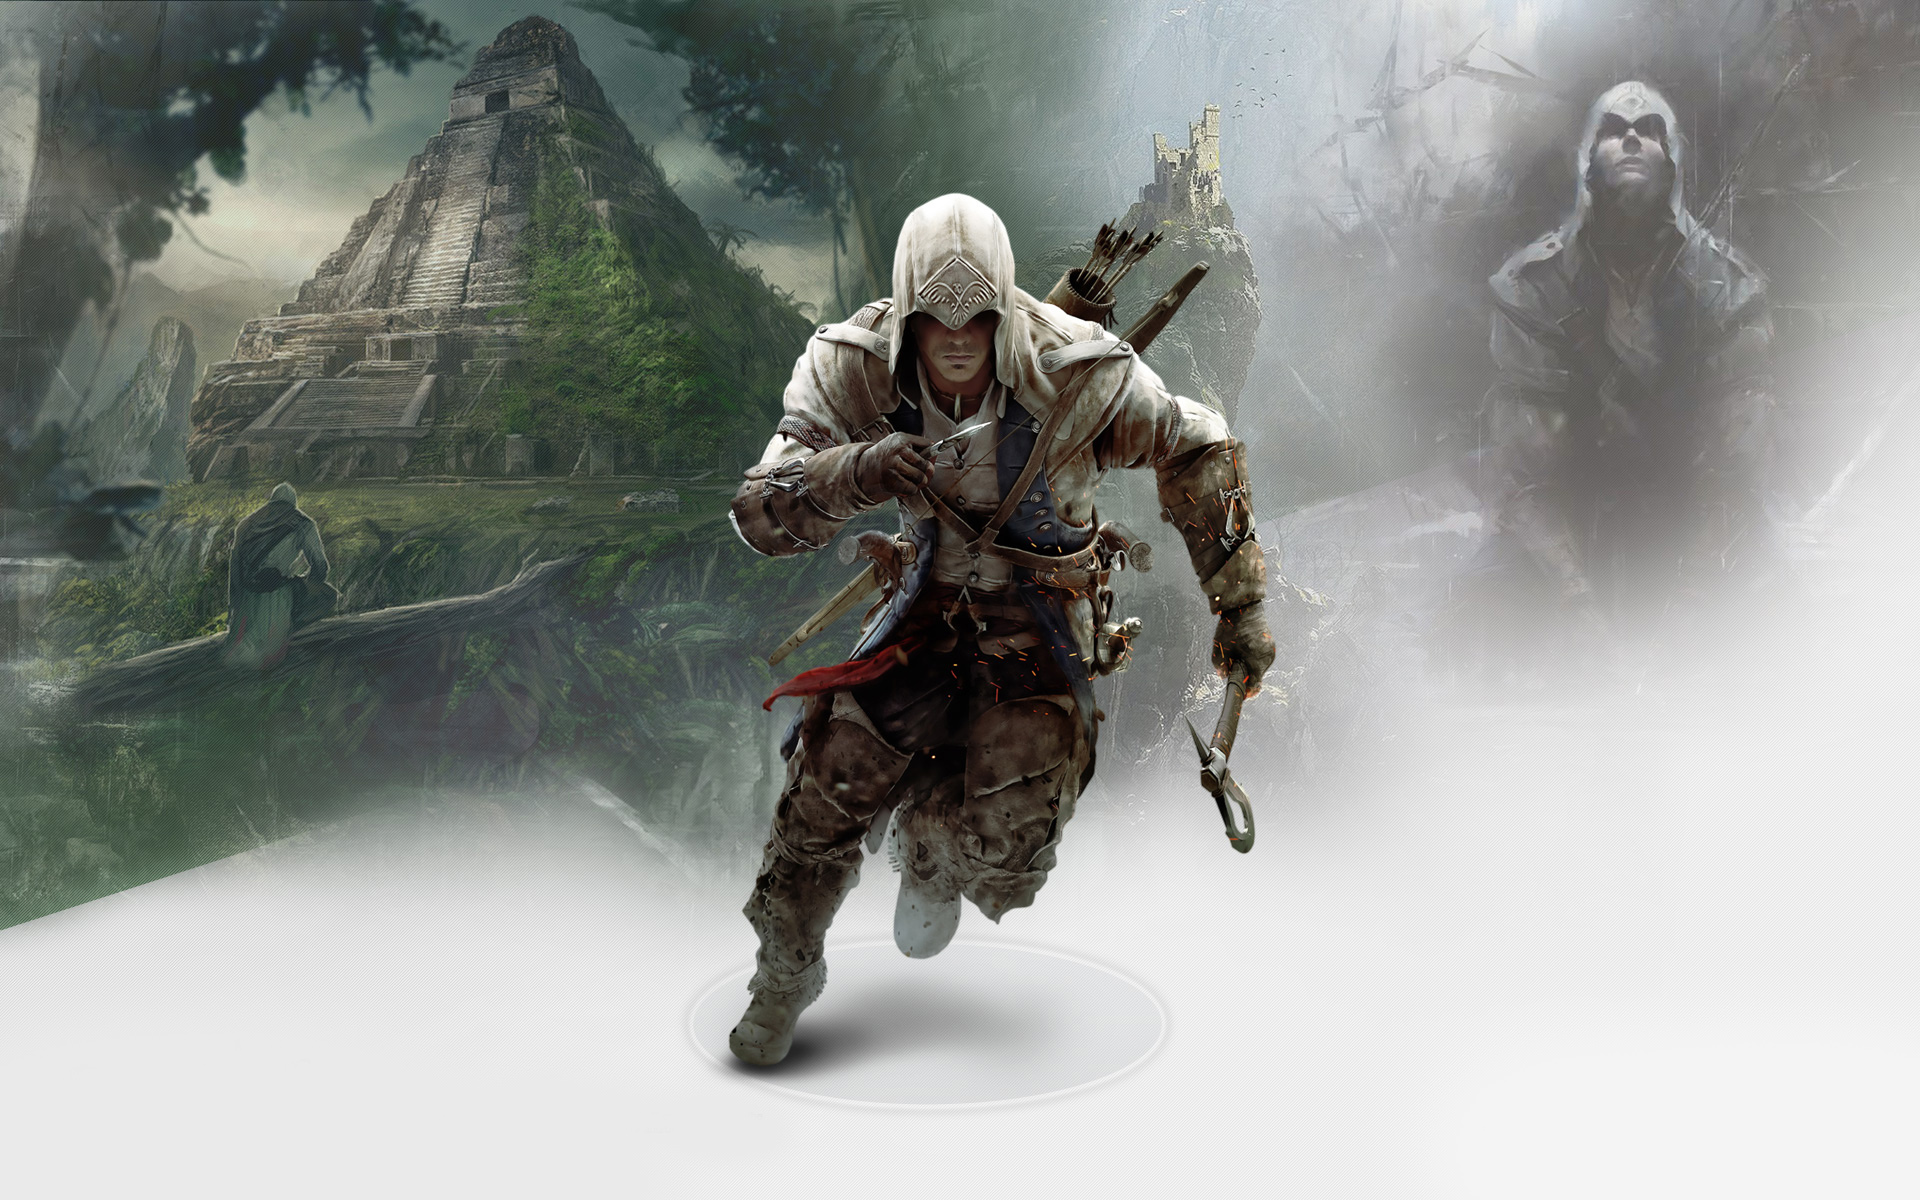 Bad Ass Ac Wallpaper With Altair Ezio Connor Assassin S